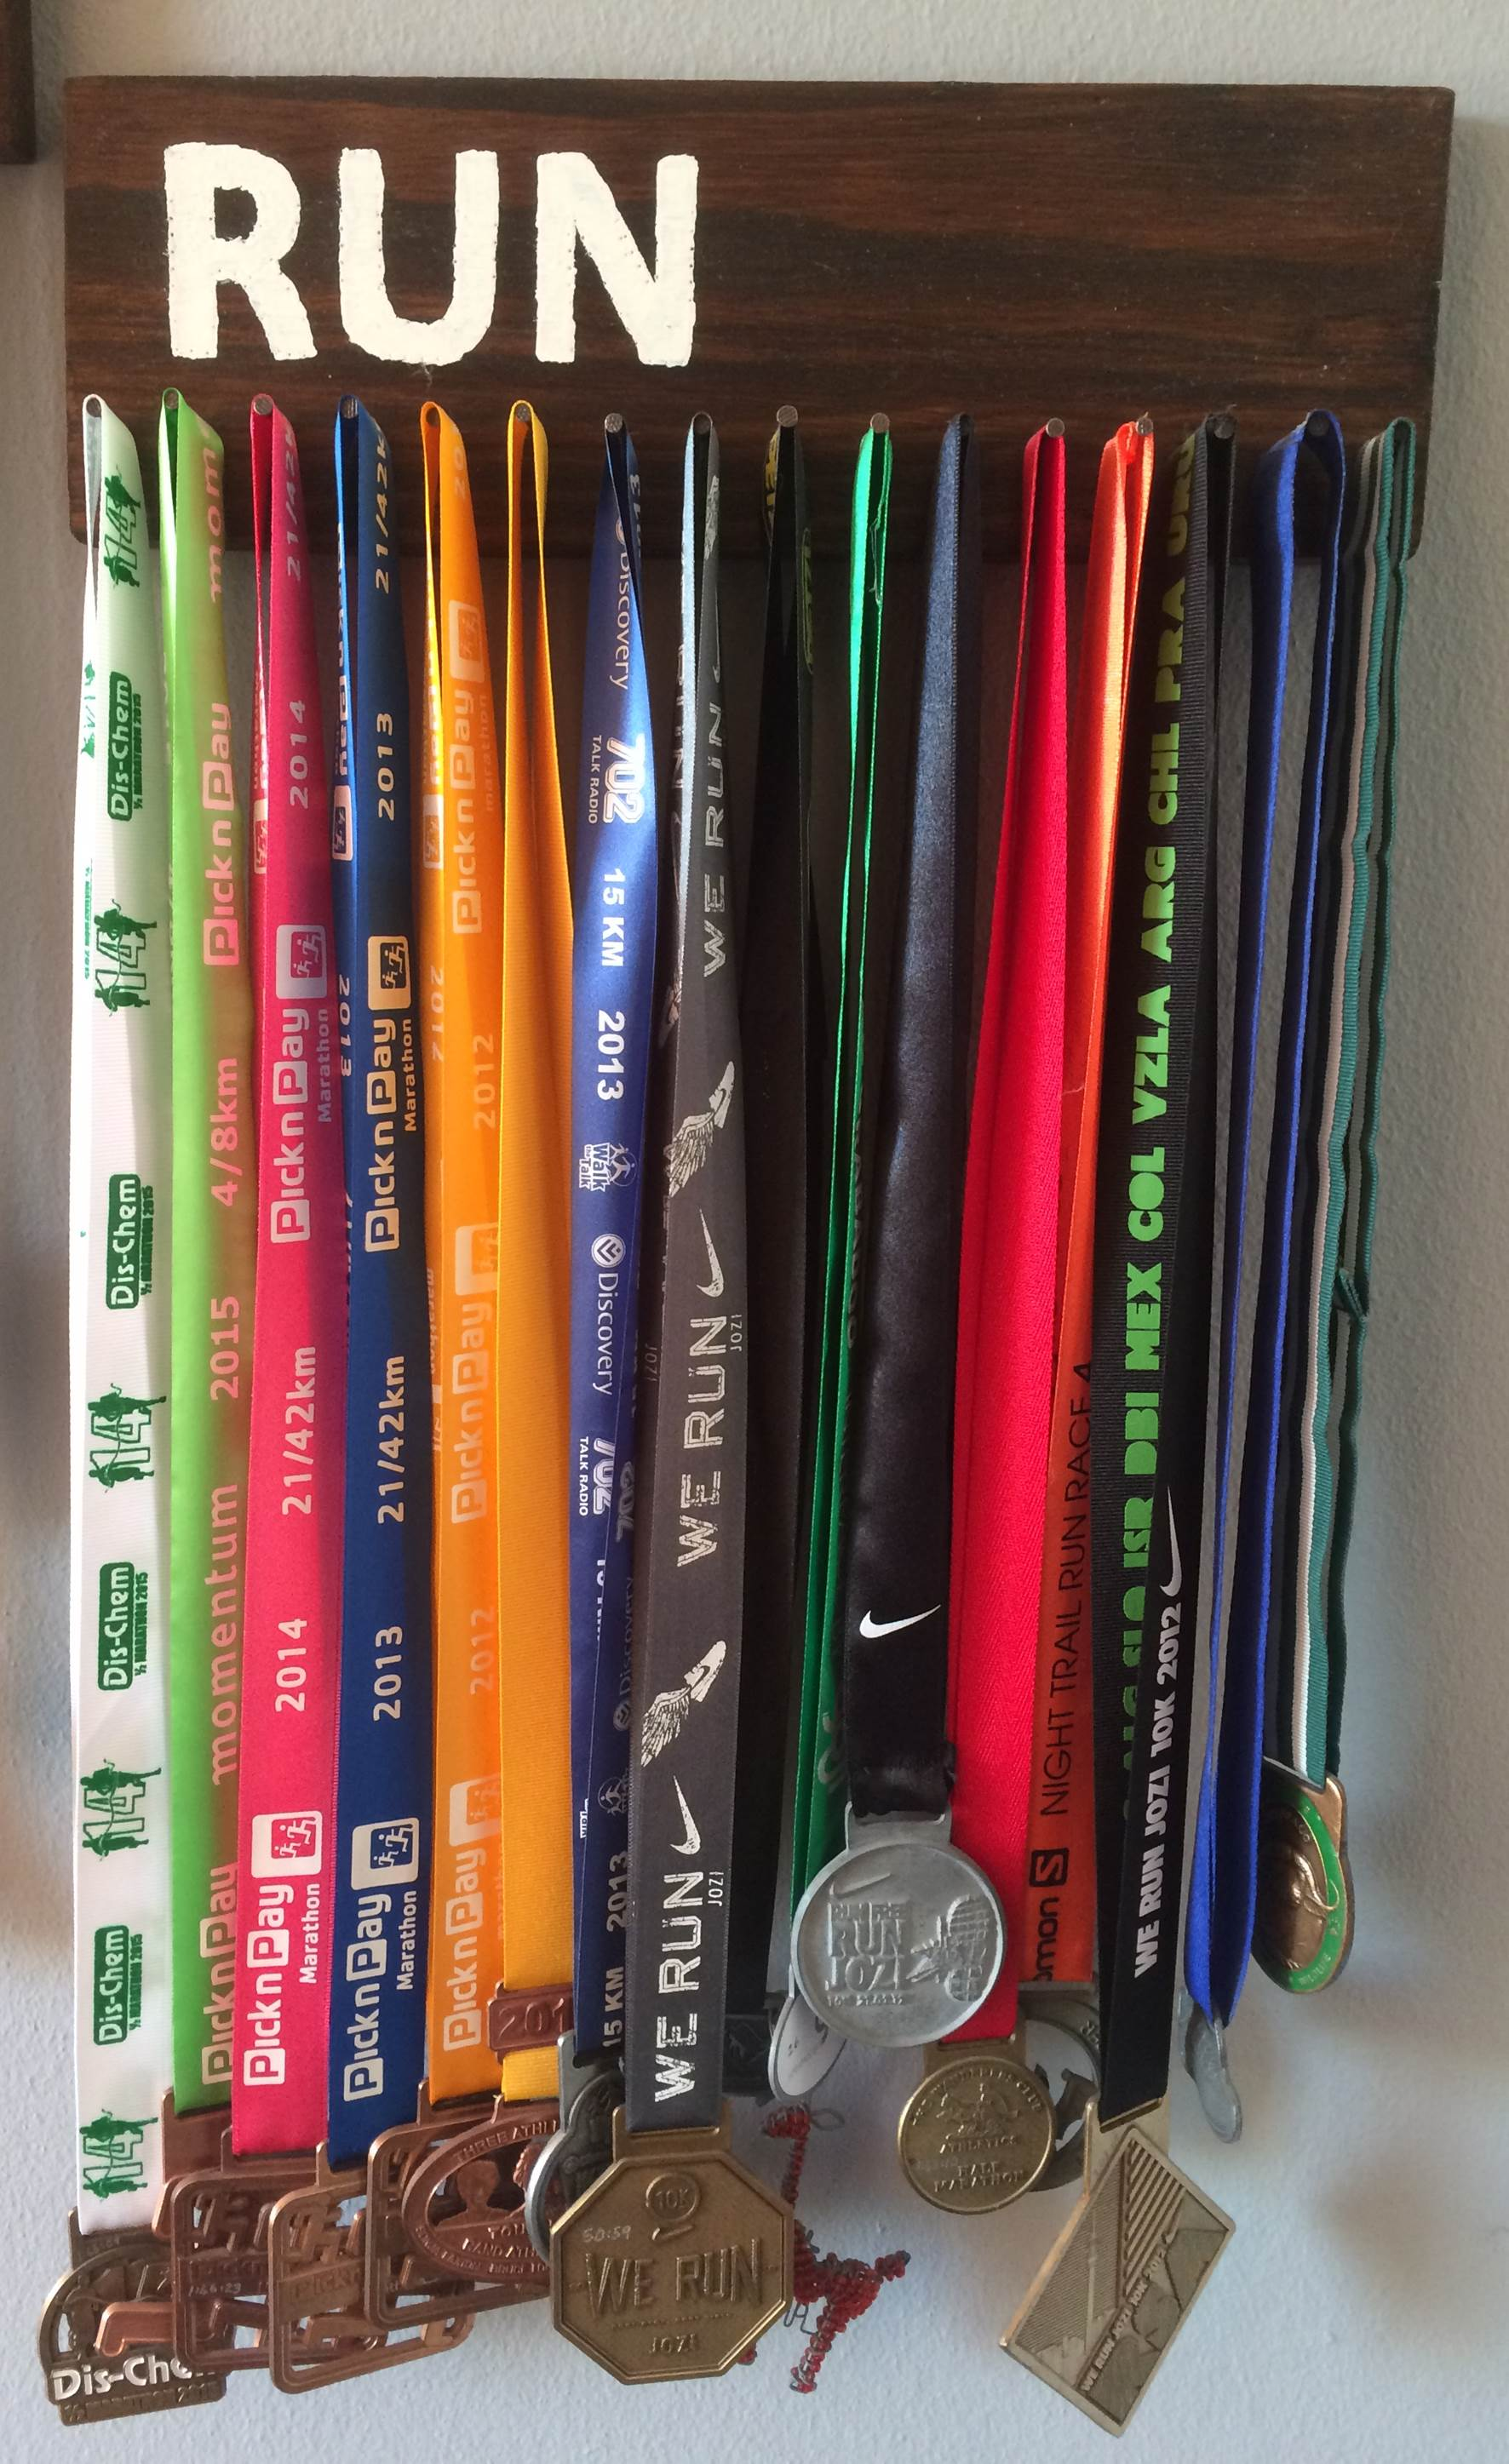 running medal day hanger ikea and race shelf do what does all friday hack racing she dsc fitness